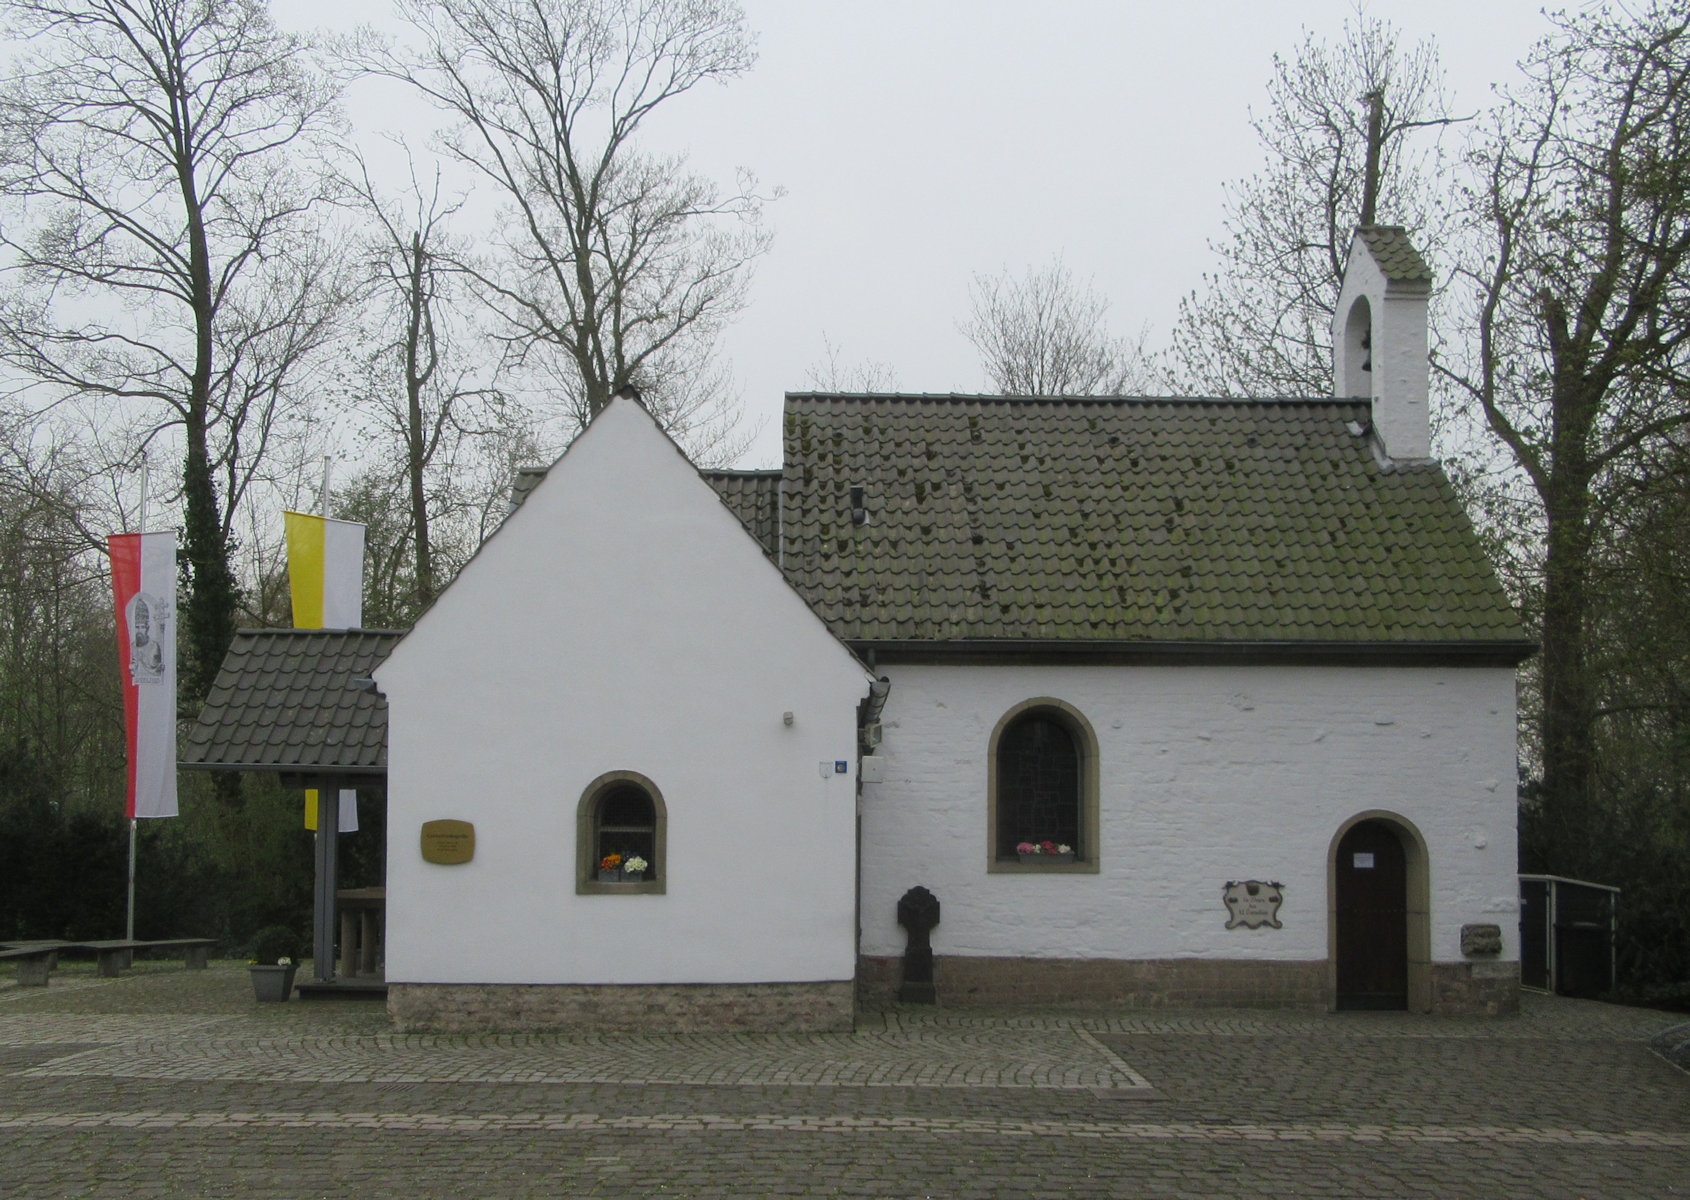 Corneliuskapelle in Selikum bei Neuss